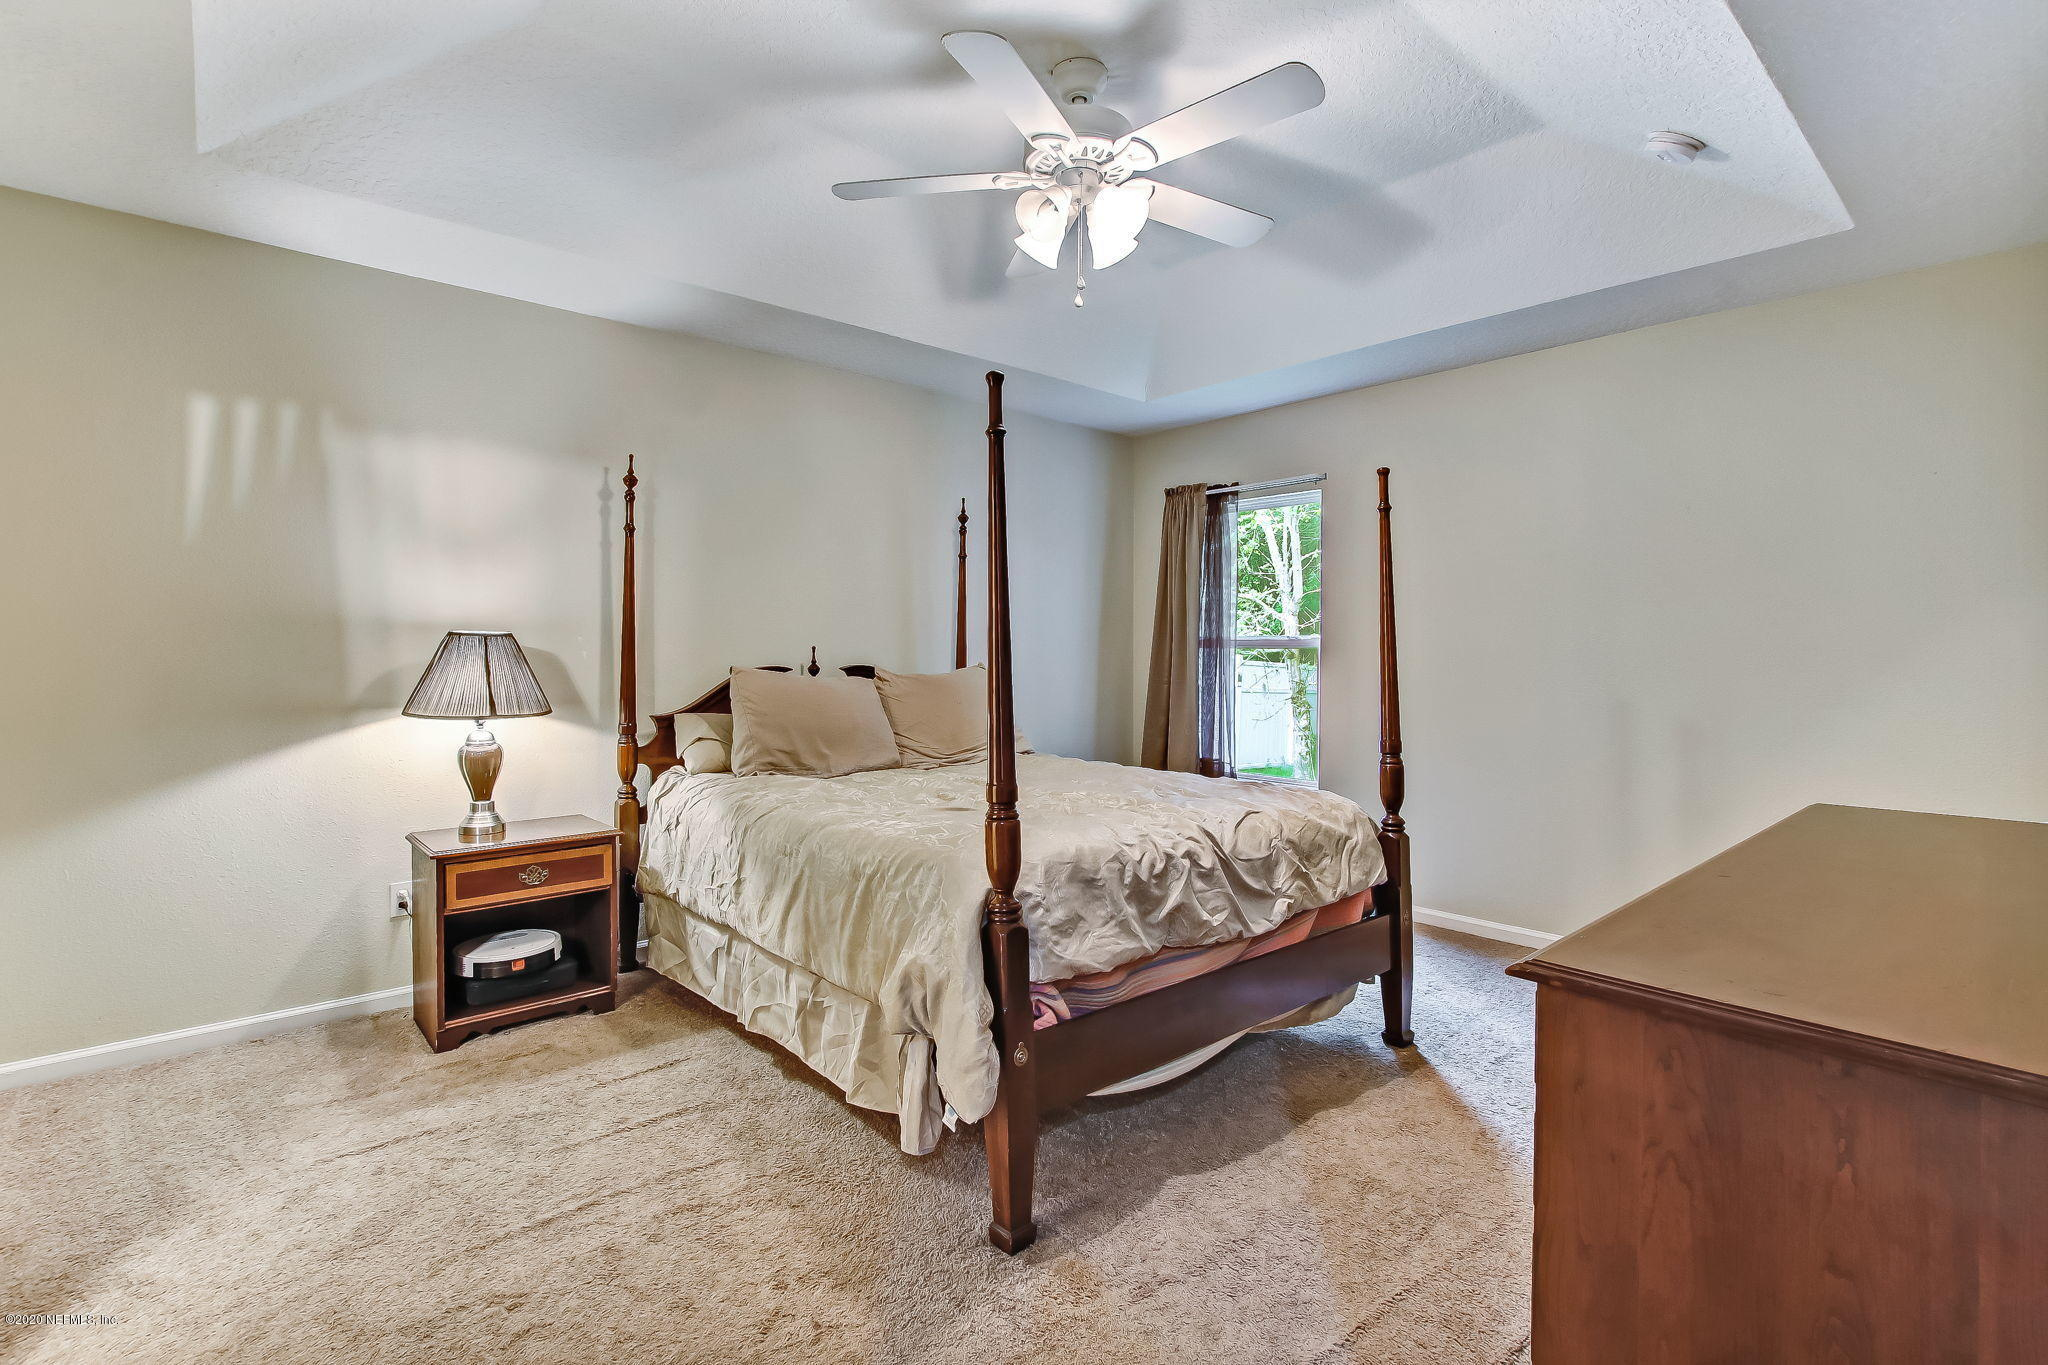 9982 TIMBER FALLS, JACKSONVILLE, FLORIDA 32219, 3 Bedrooms Bedrooms, ,2 BathroomsBathrooms,Residential,For sale,TIMBER FALLS,1078448